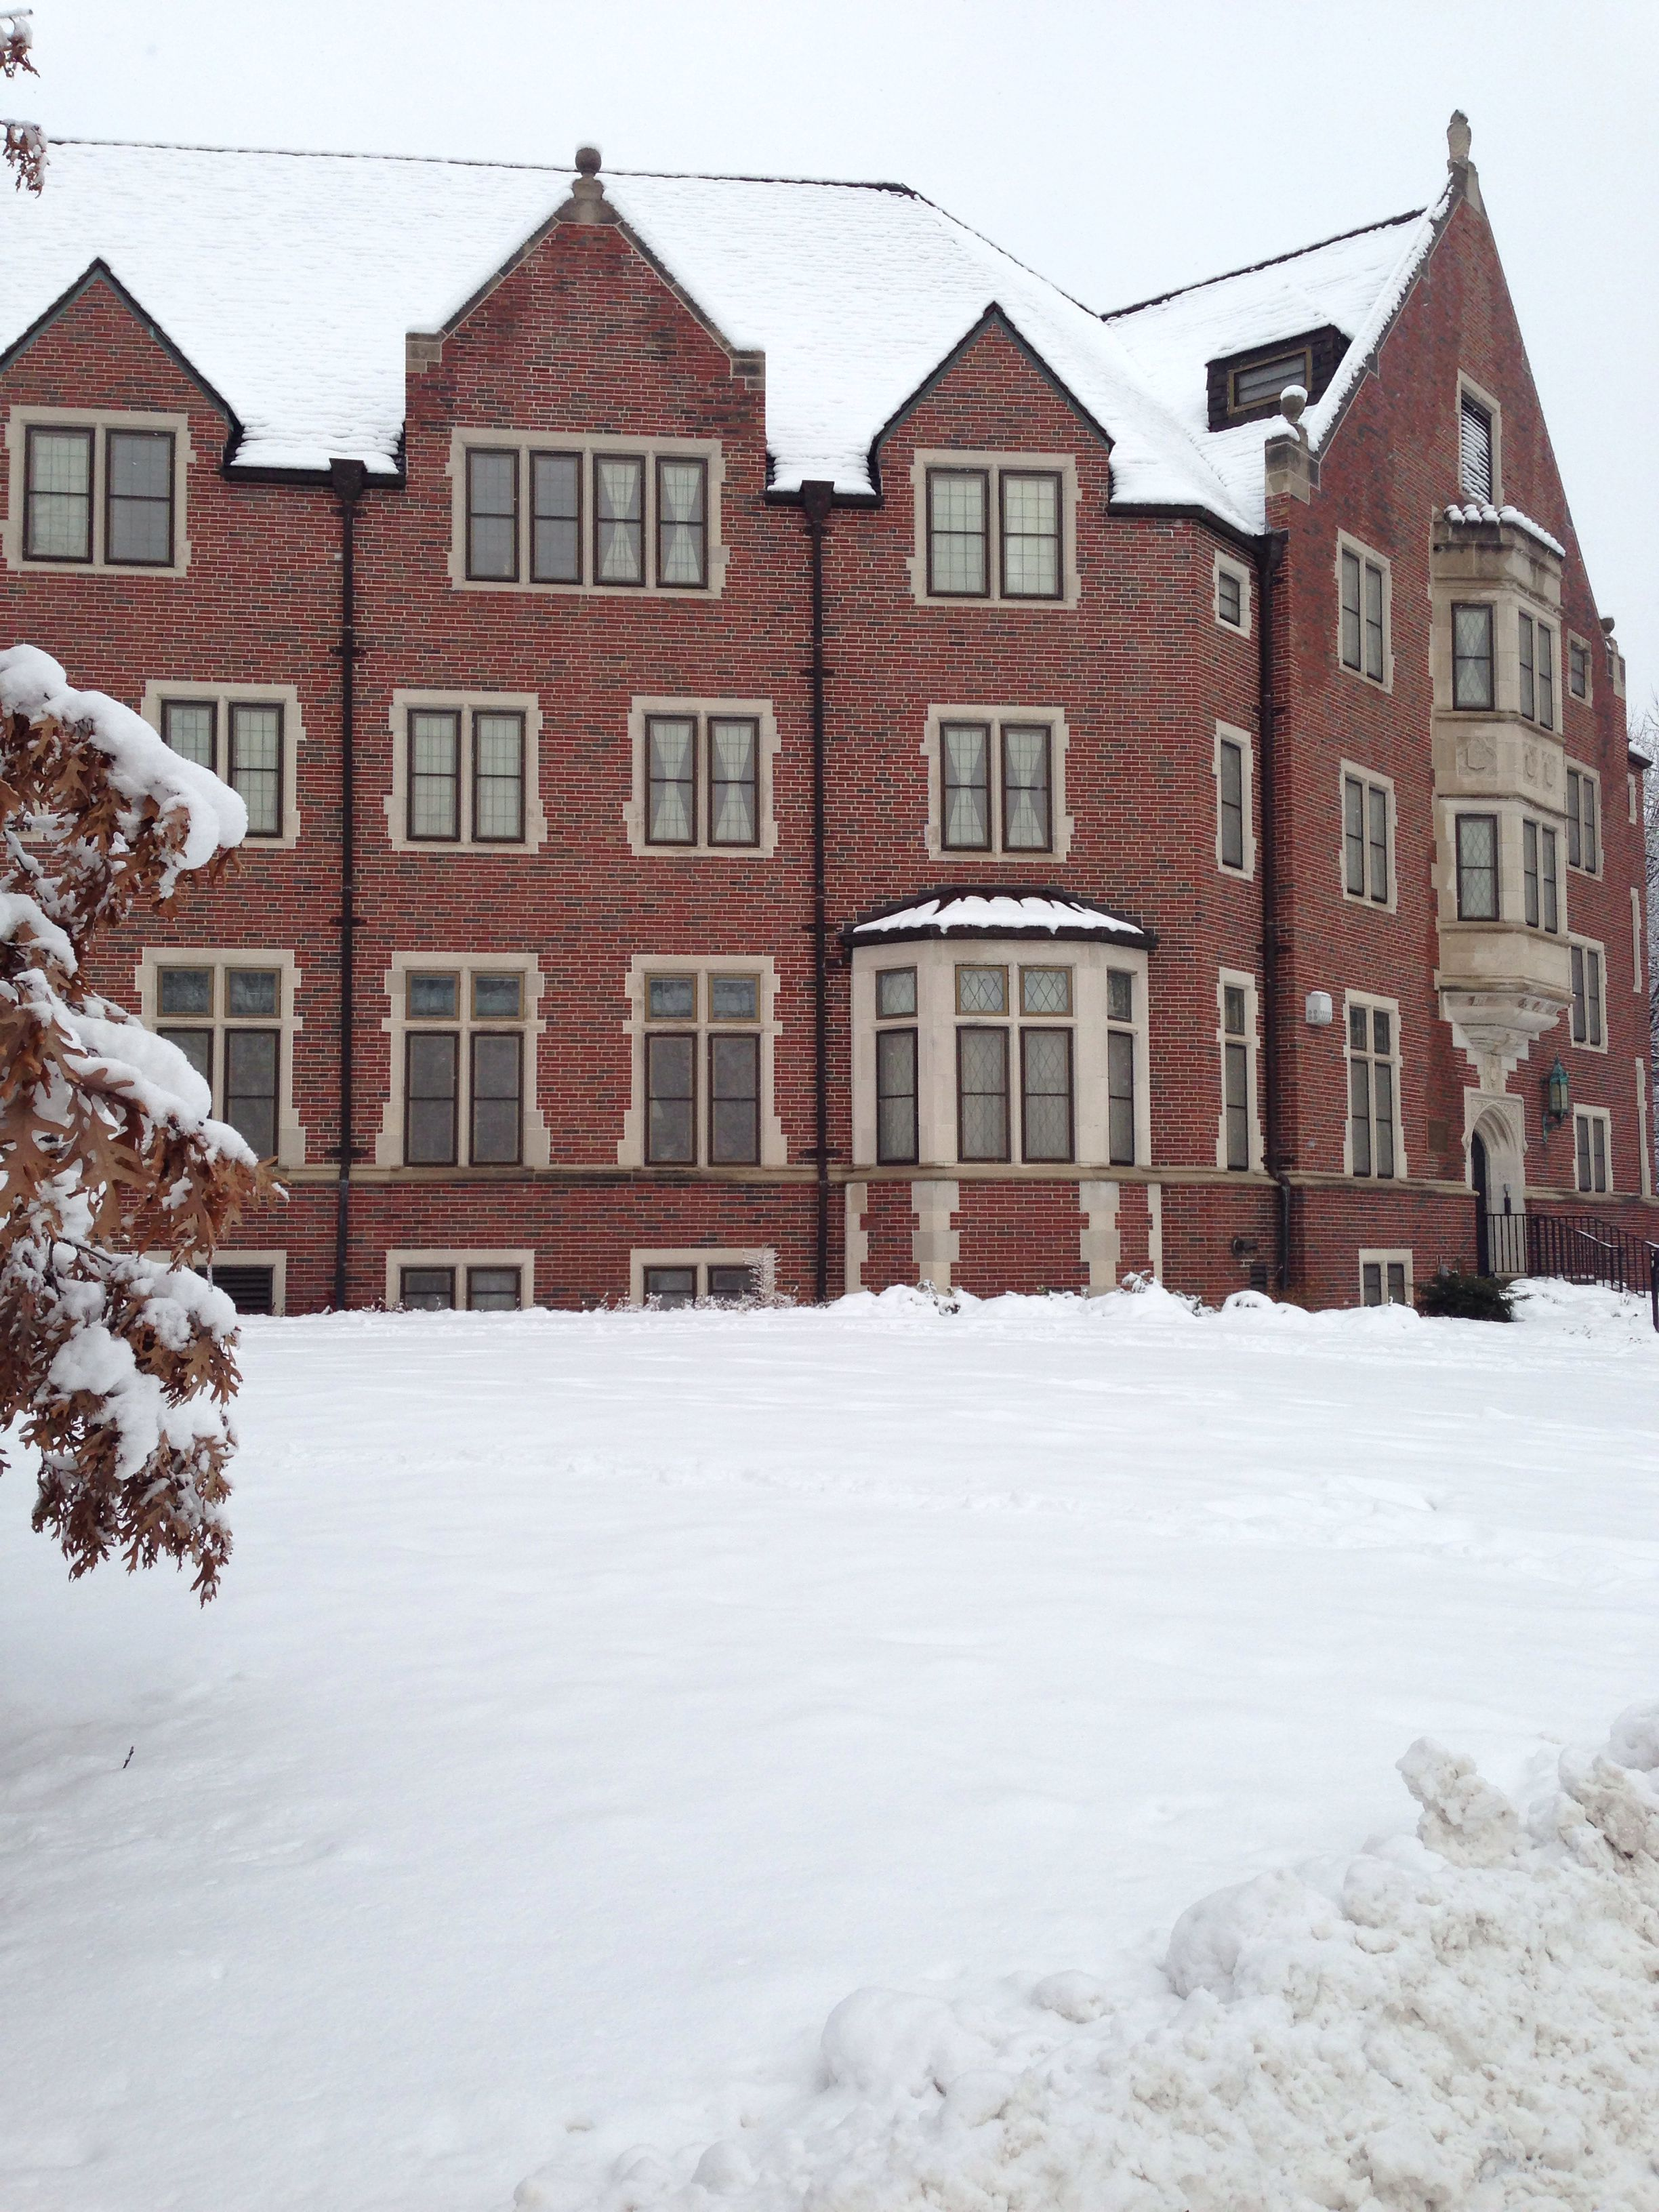 Windsor Hall Winter Wonderland My Castle My Home Away From Home Purdue University Purdue Home Again